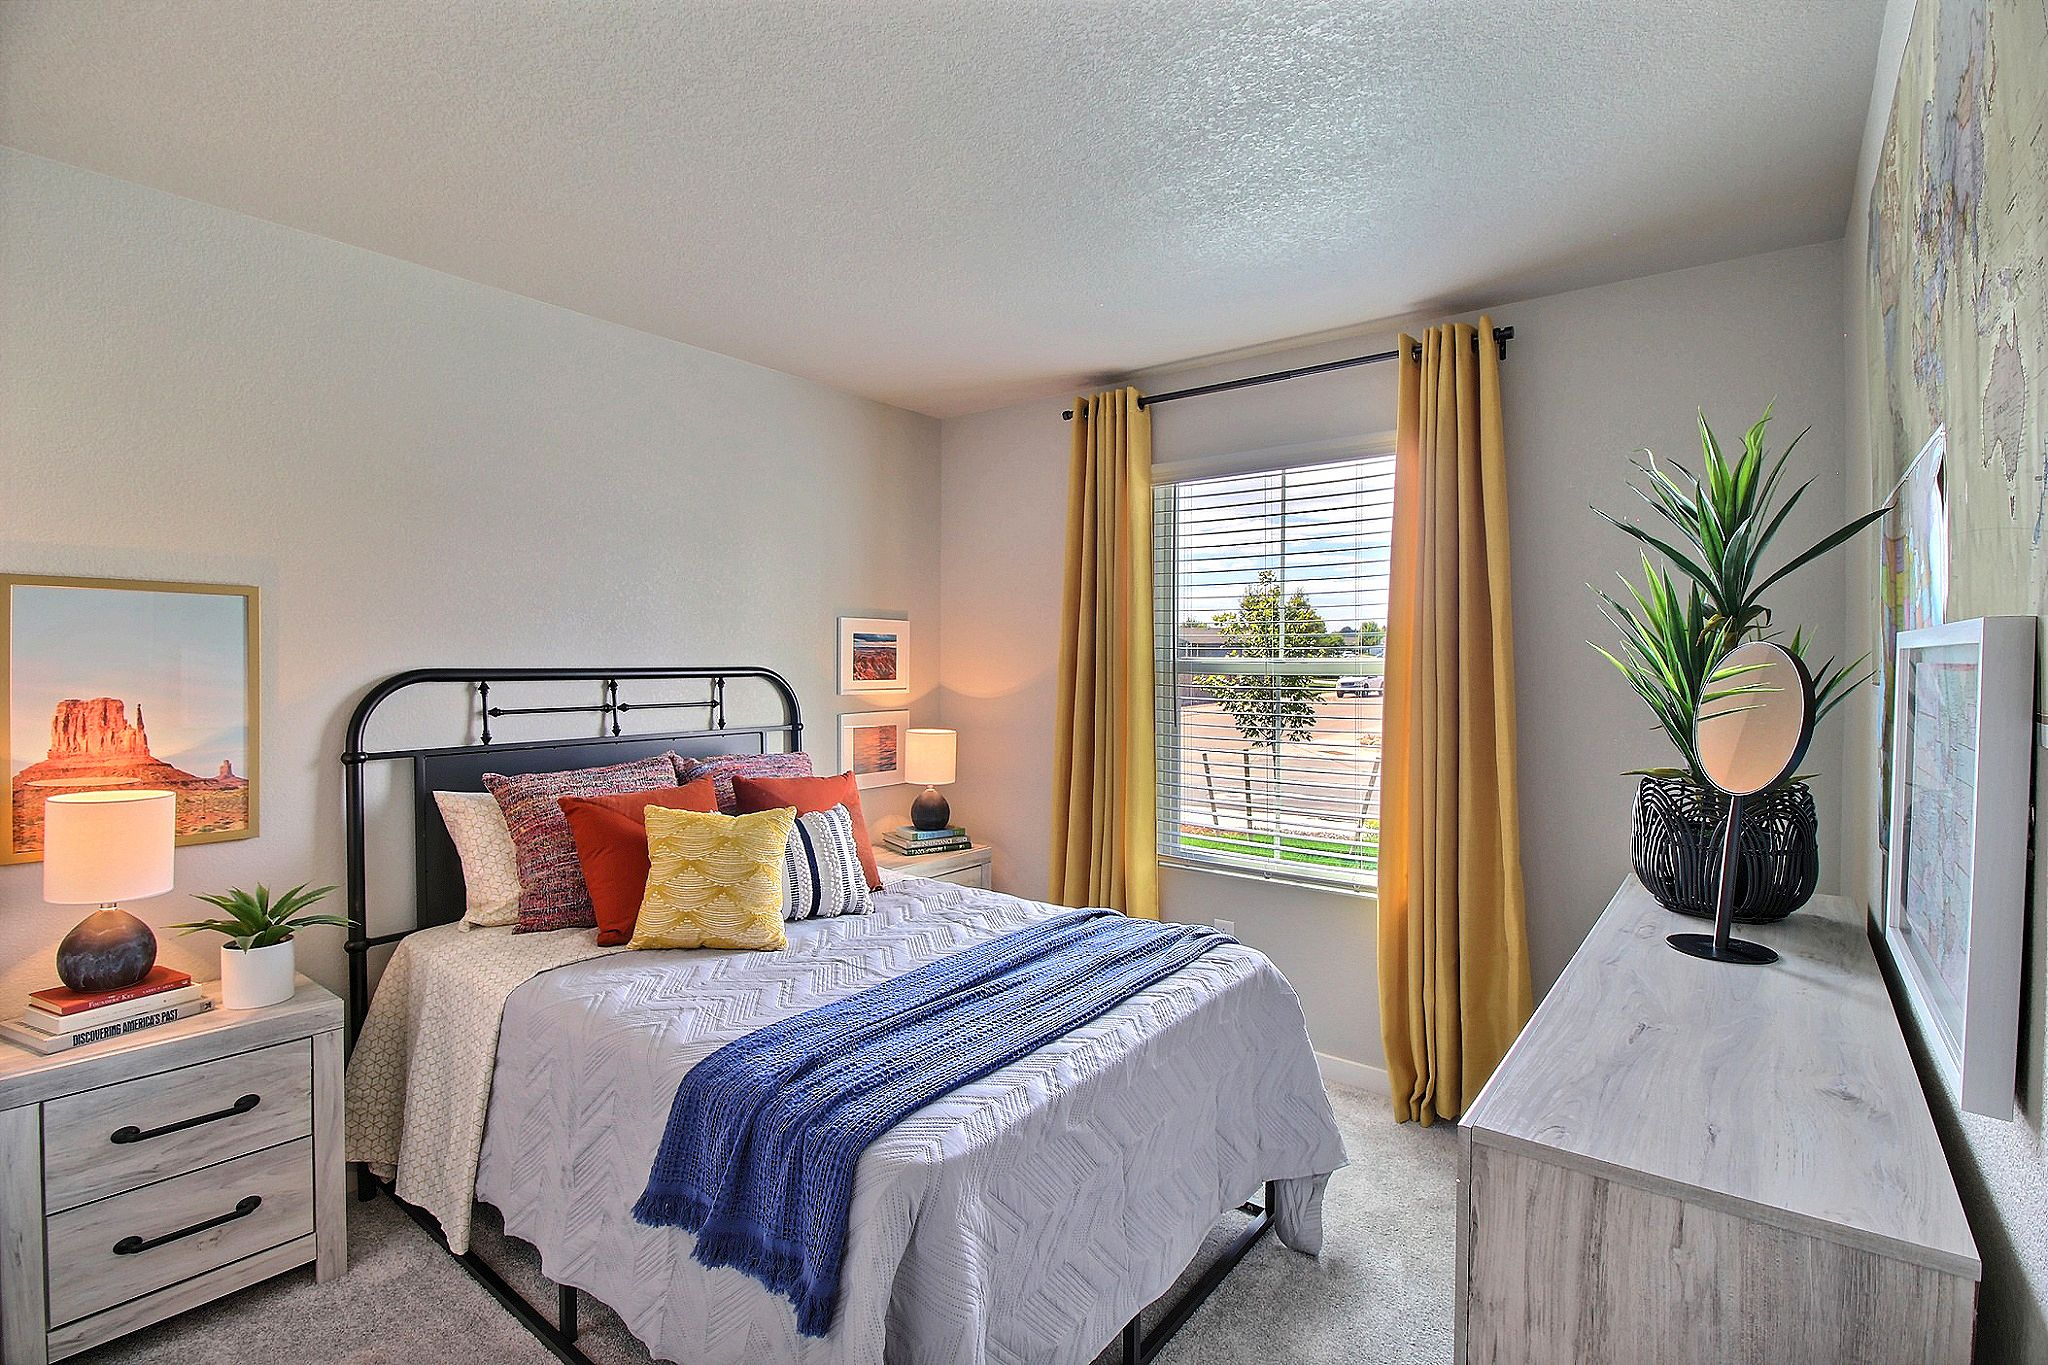 Bedroom featured in the Del Norte By Baessler Homes in Greeley, CO